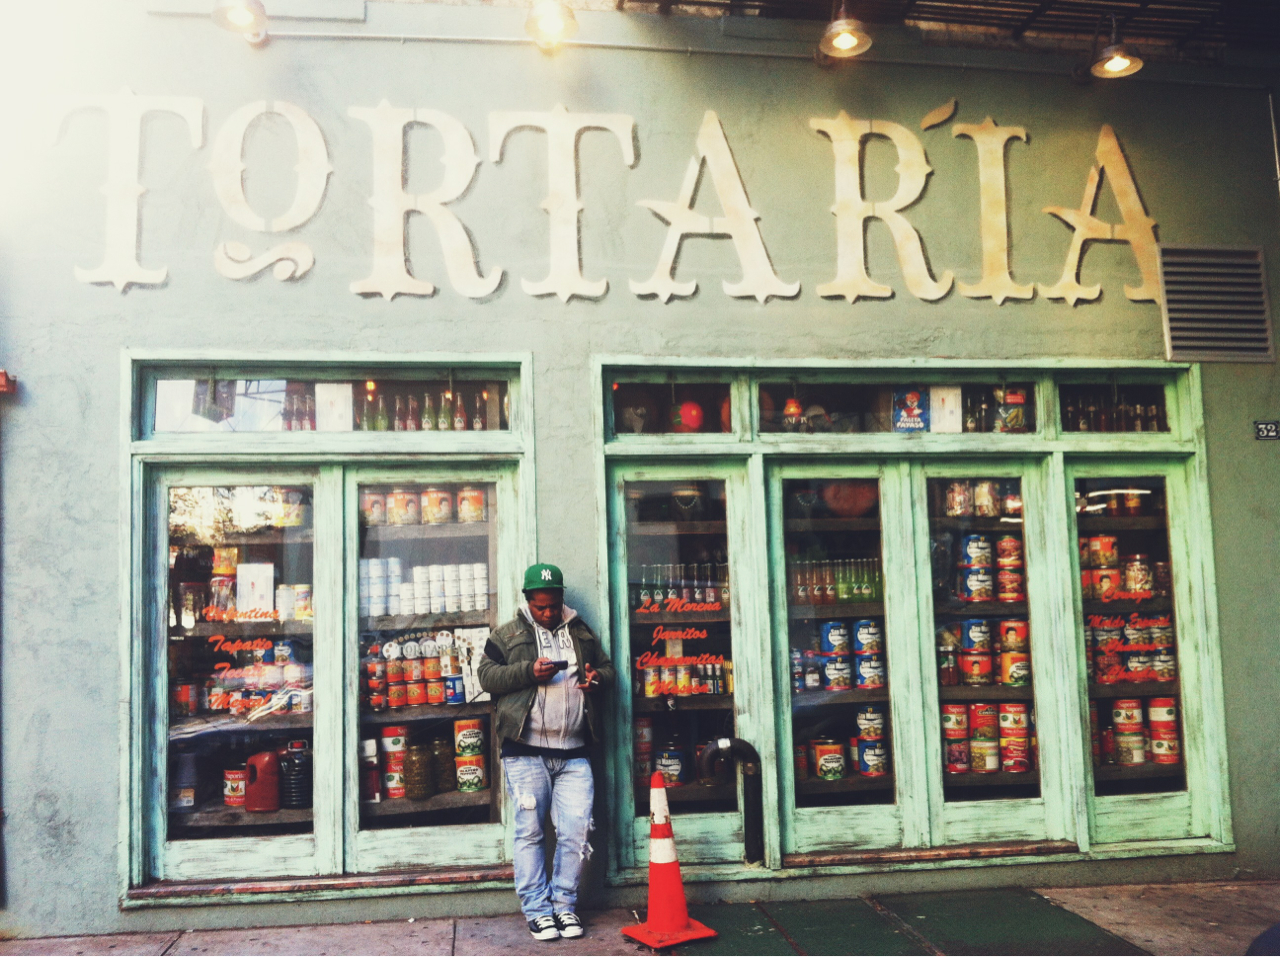 #nyc #tortaria #eastvillage